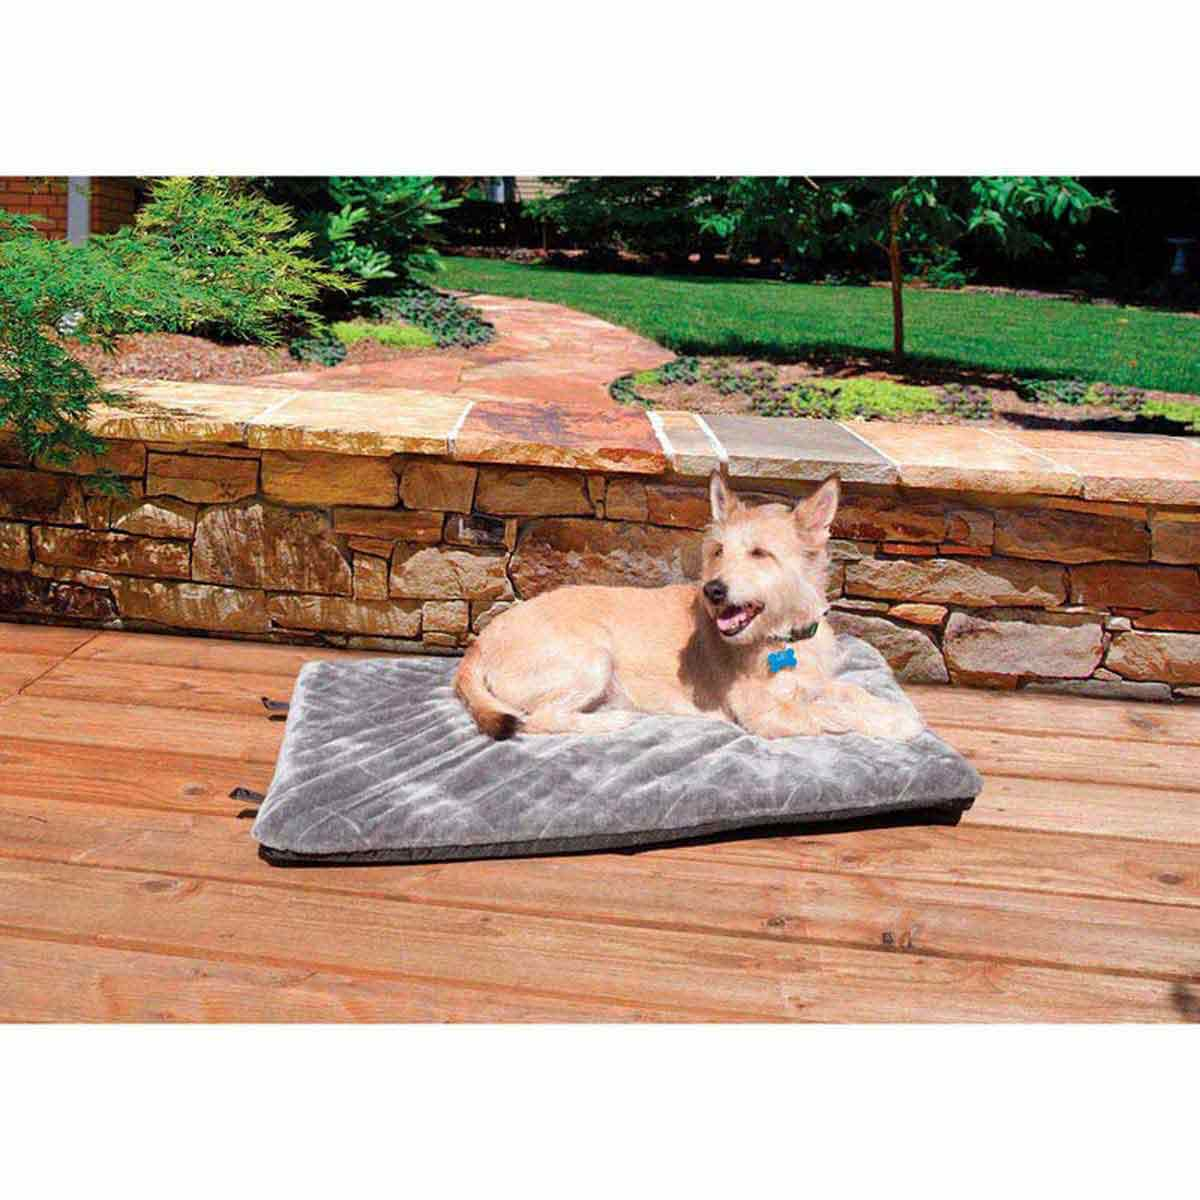 Furhaven Nap Crate Orthopedic Mats Silver - 16 inches by 23 inches by 2 inches